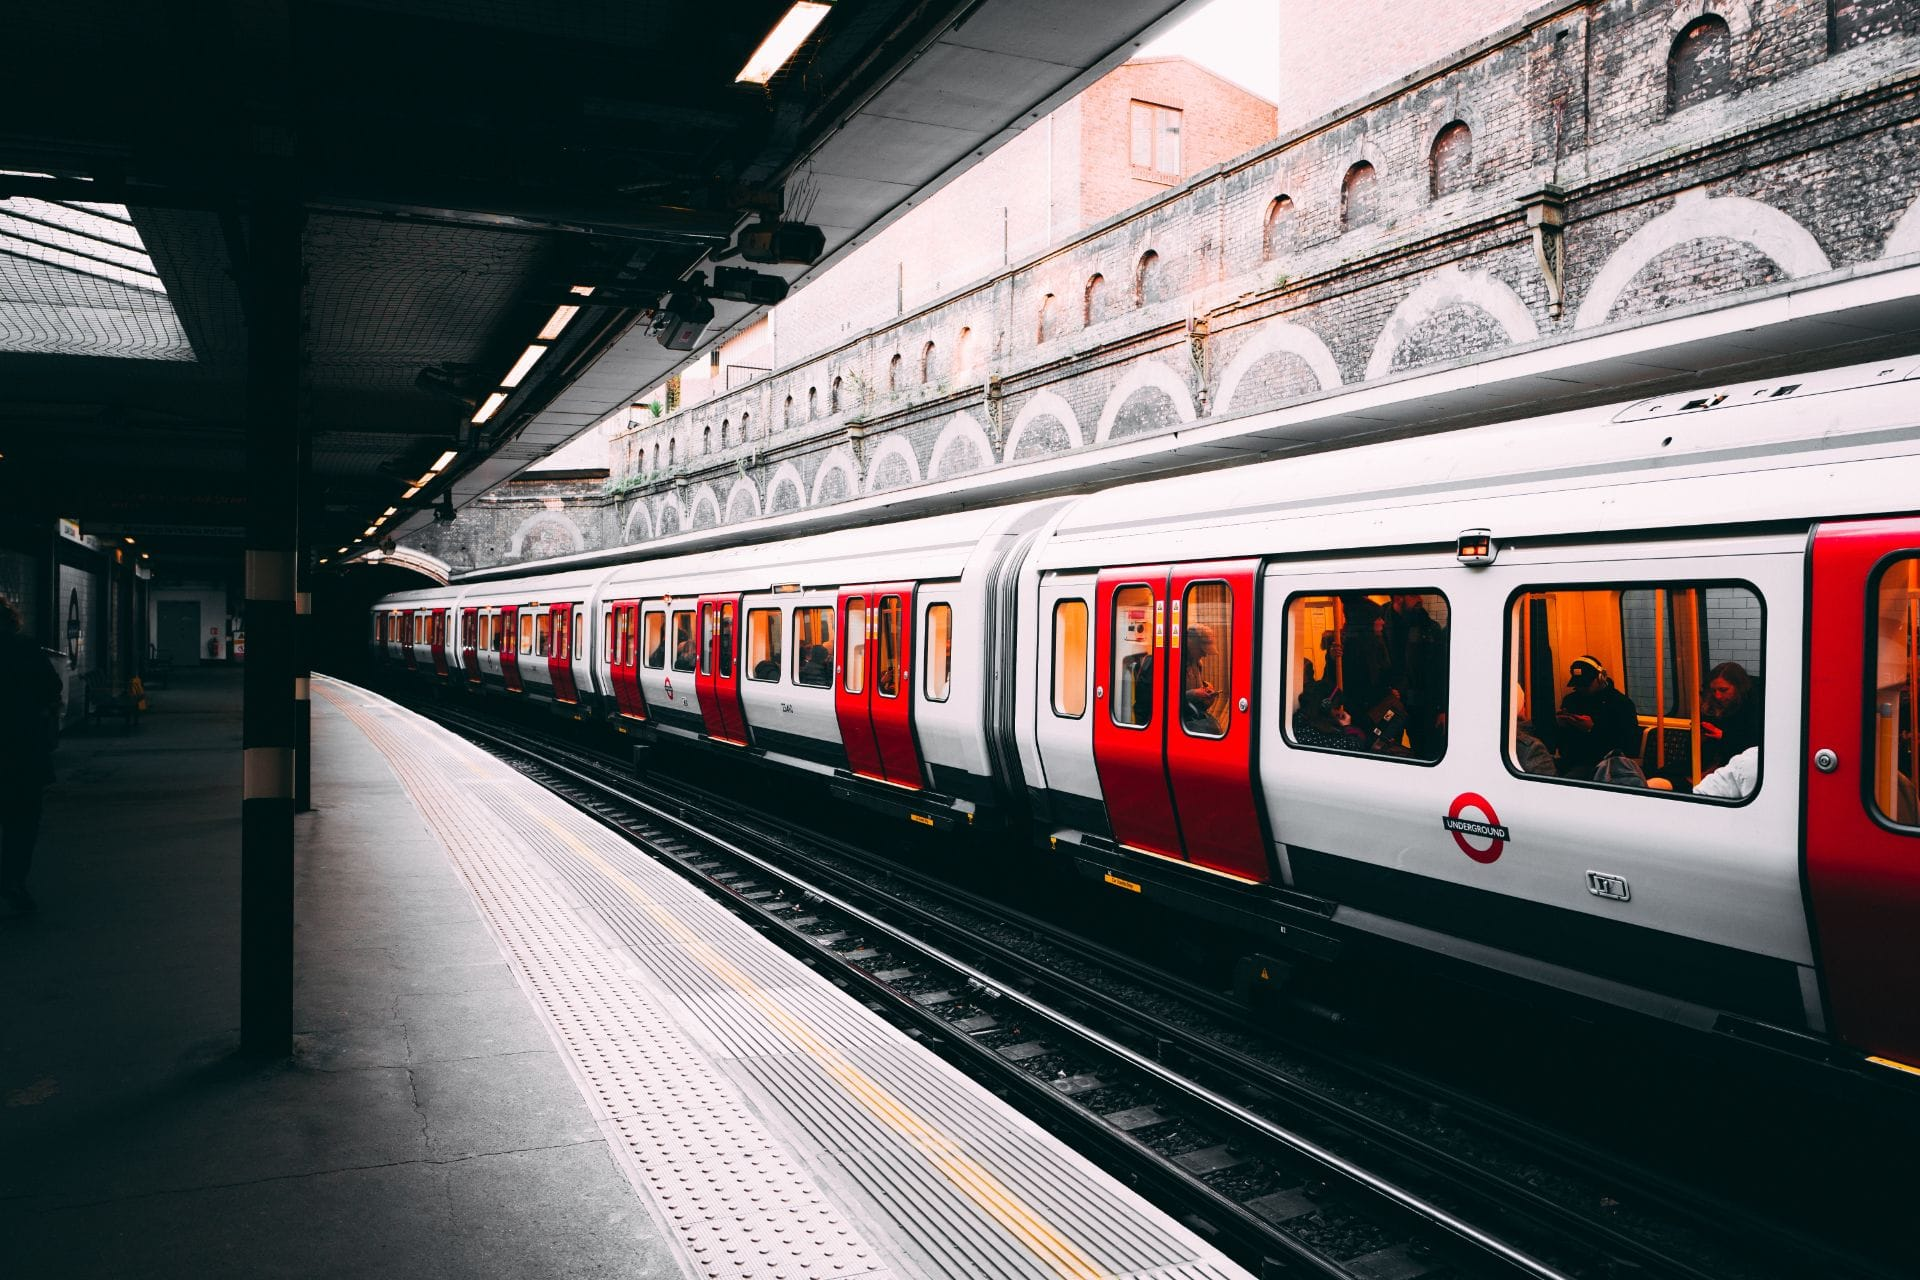 metro-tube-underground-train-in-london-at-an-overground-station-sustainable-travel-tips